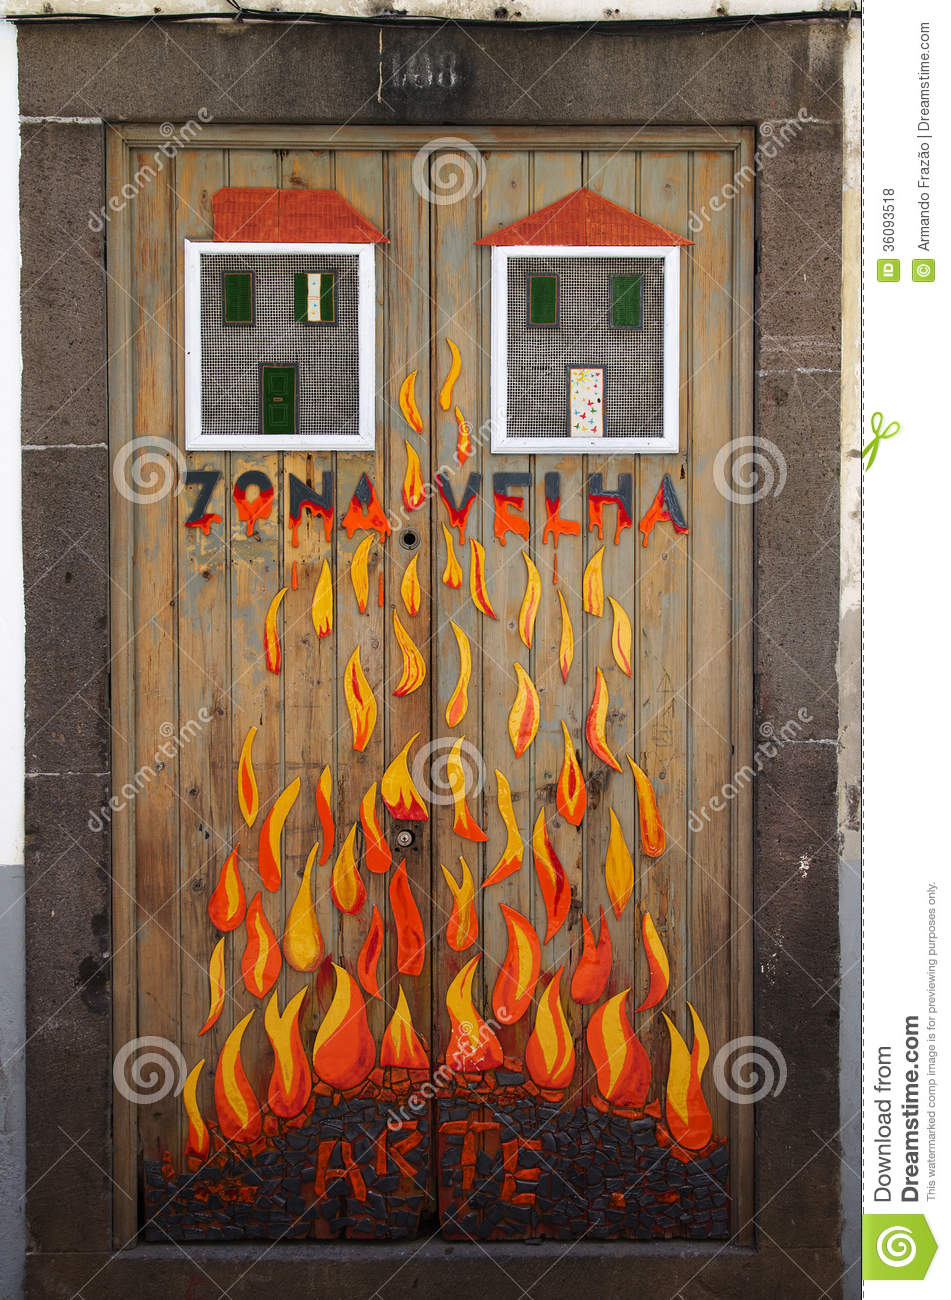 Street art - open door art - fire flames & Street Art - Open Door Art - Fire Flames Editorial Stock Photo ...